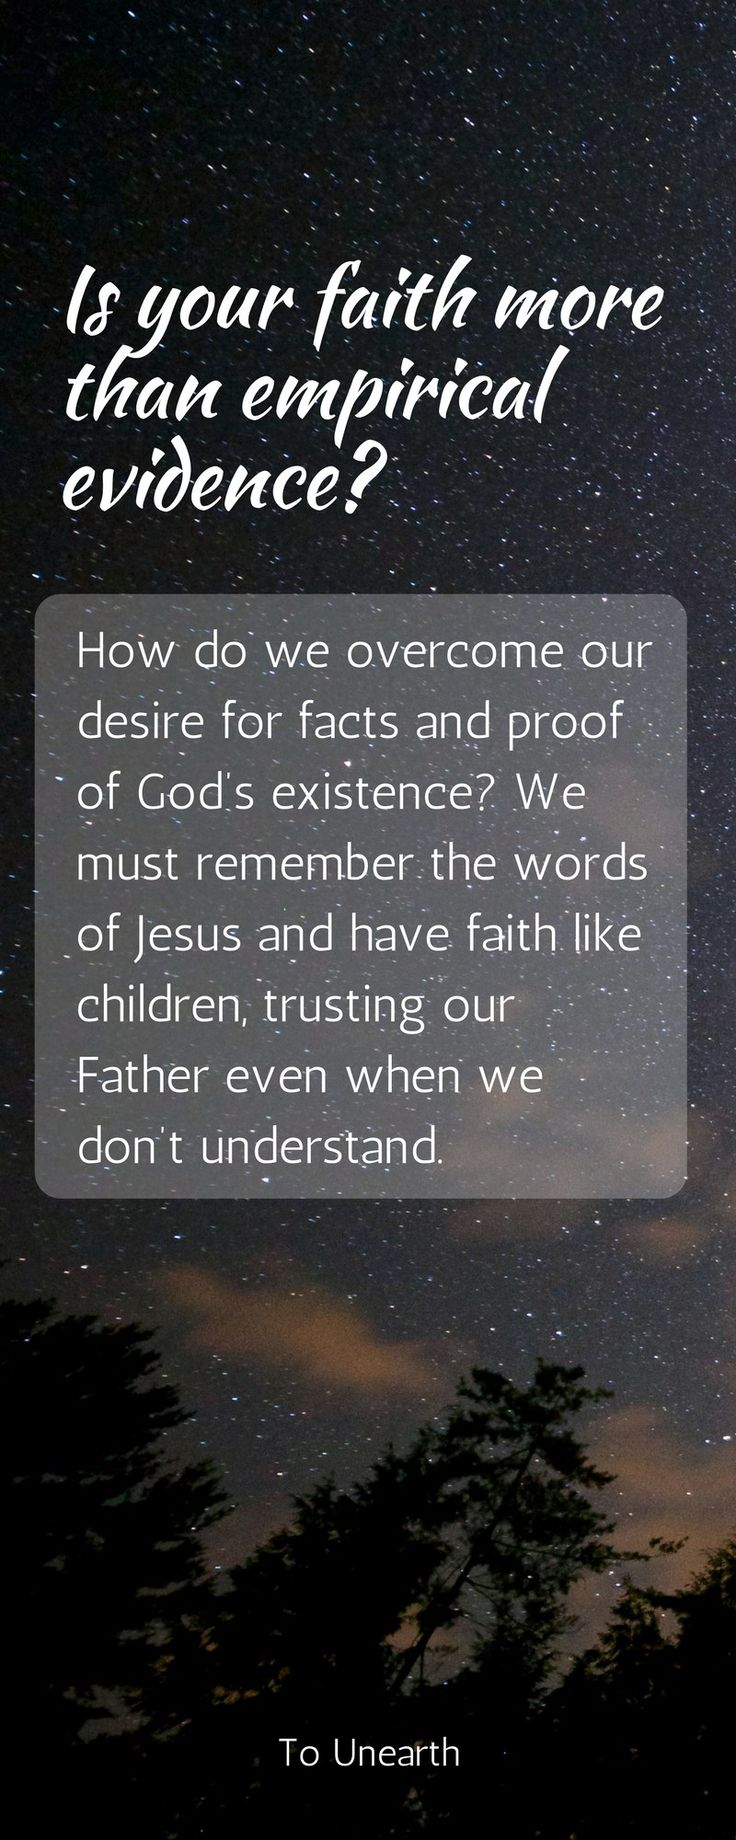 Why our faith is more than empirical evidence | Learn the evidence that supports God | Do you have faith even though we don't have all the facts? | Trusting God with childlike faith #faithandfacts #followerofgod #childlikefaith #tounearth